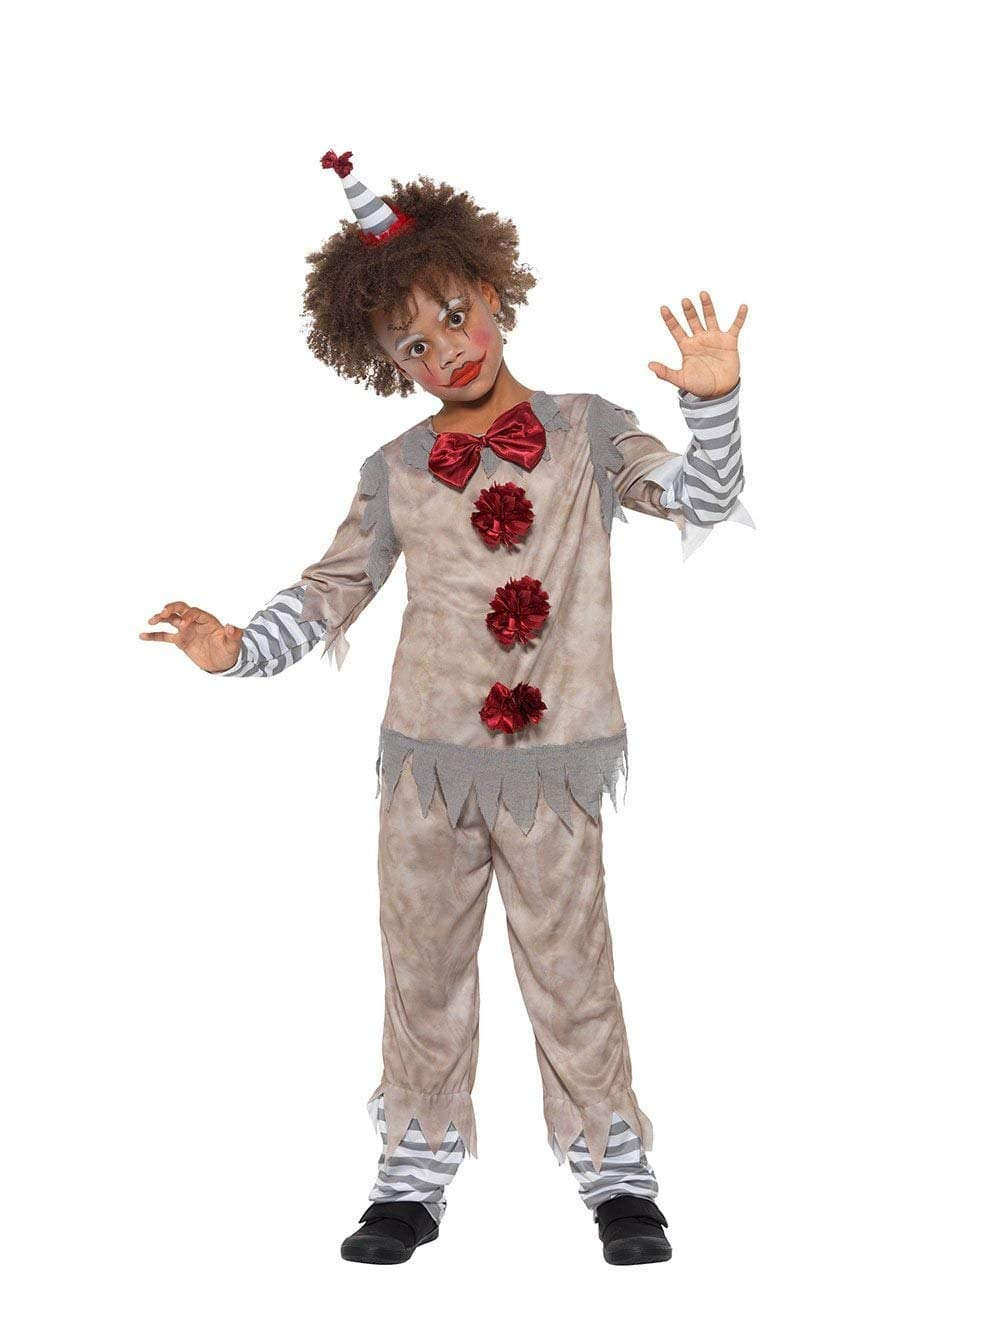 Vintage clown kids 49844